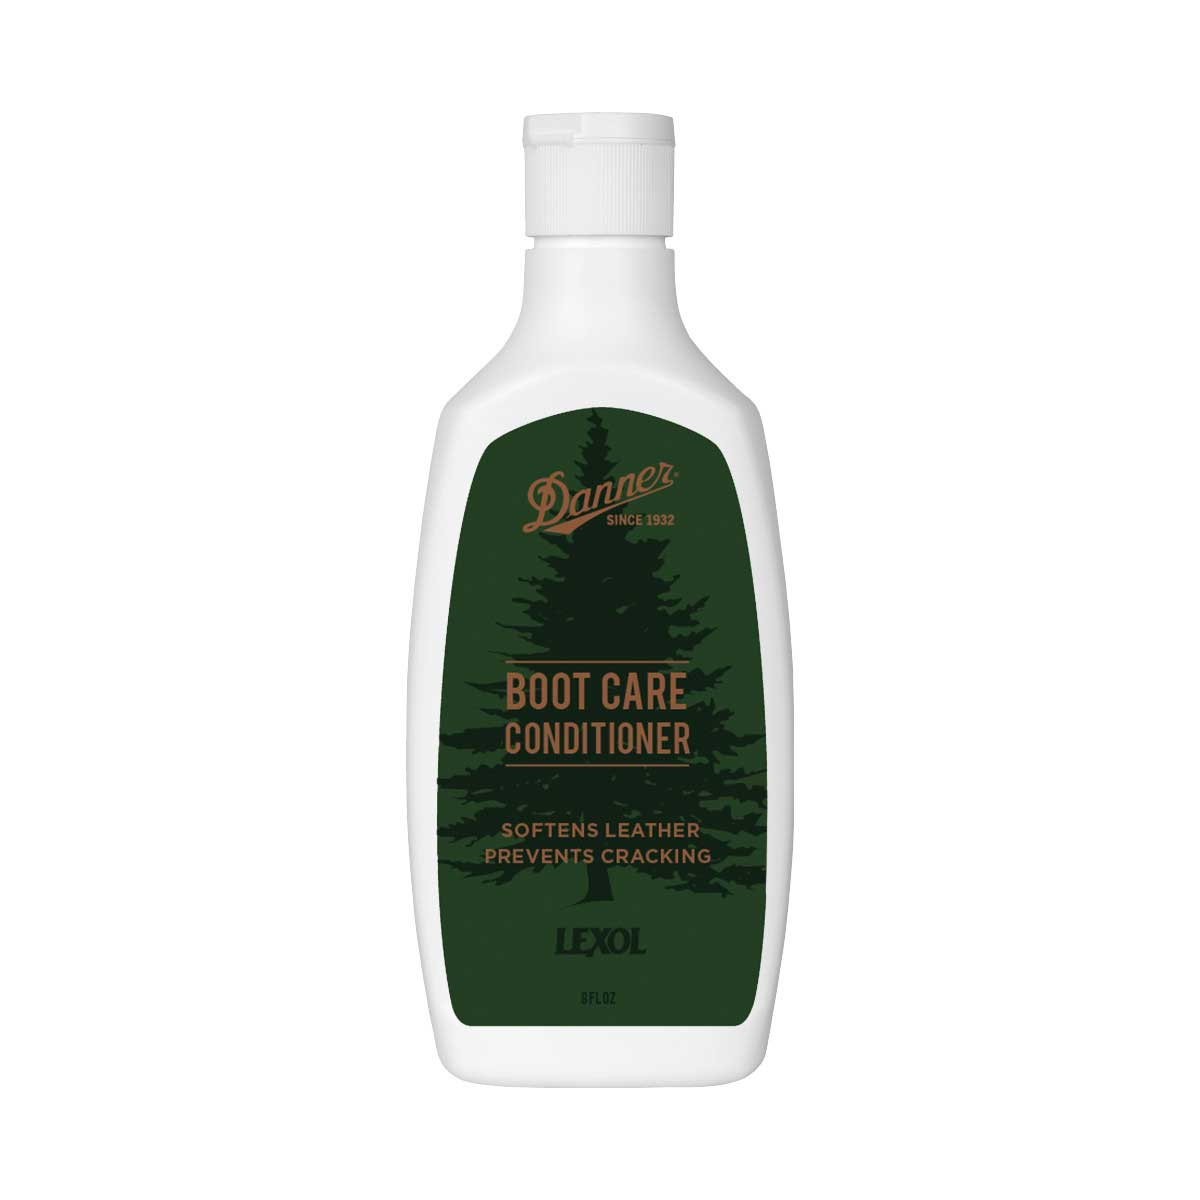 Danner Leather Conditioner by Lexol, 8oz